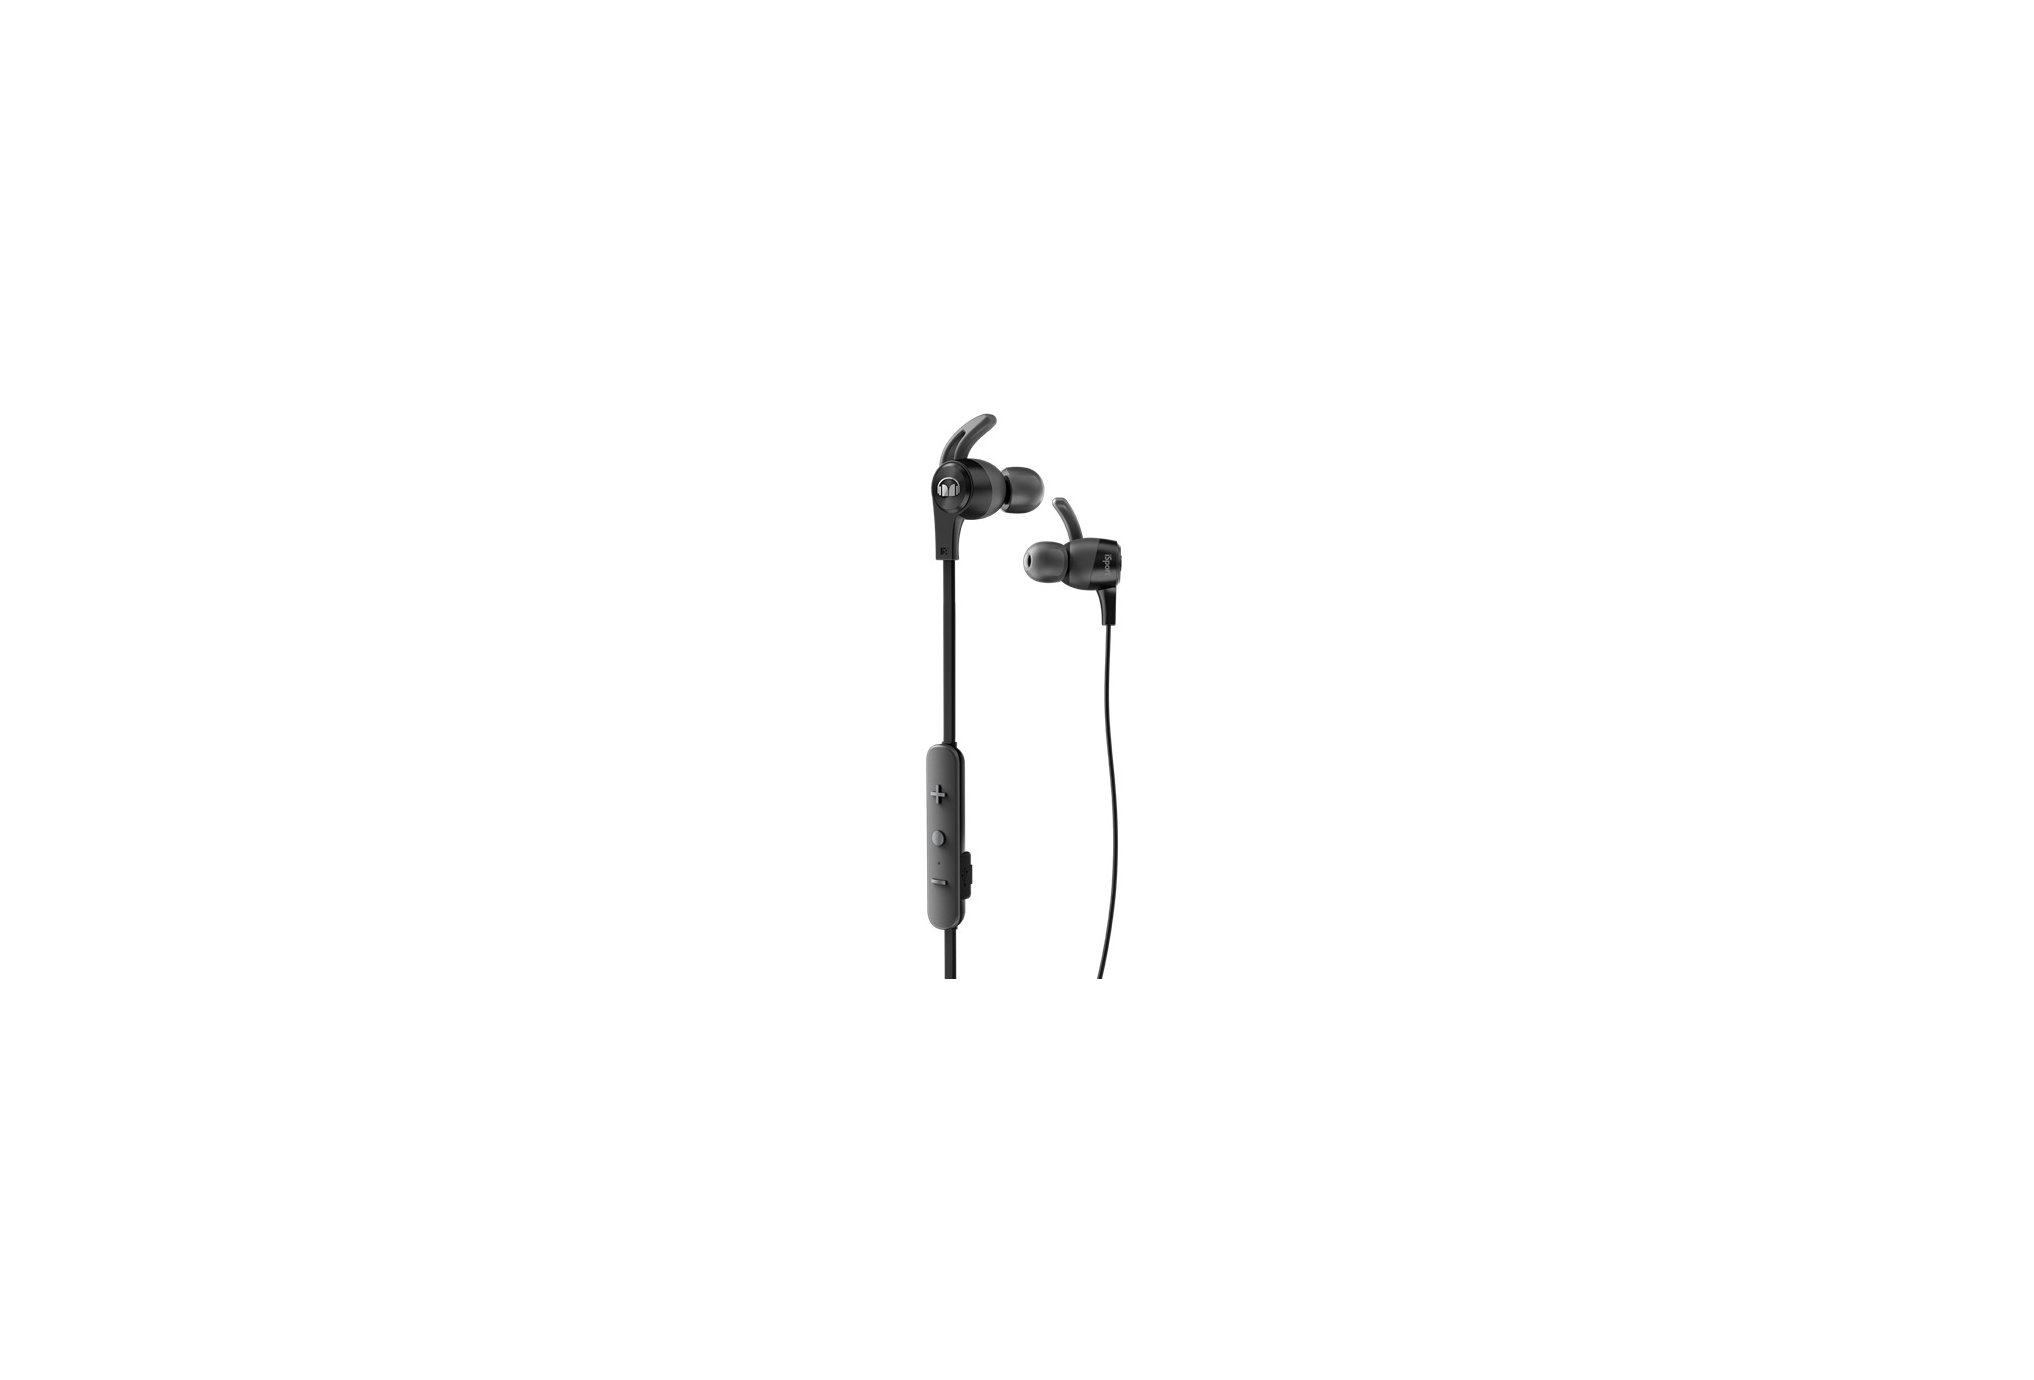 Monster Auriculares iSport Achieve Bluetooth Casques / lecteurs mp3